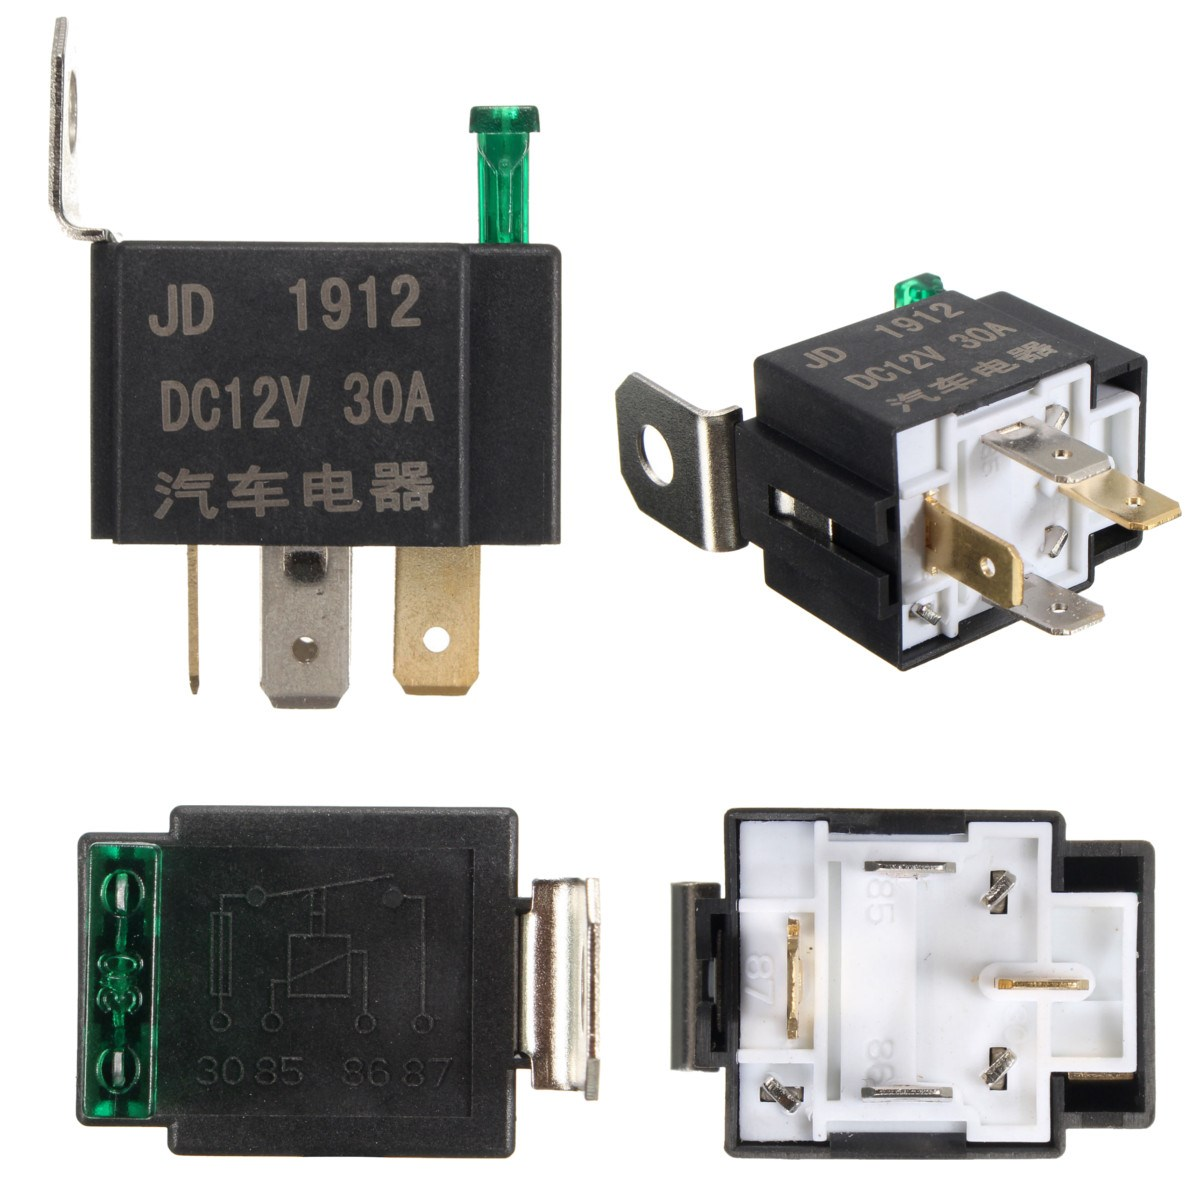 Nieuwe Fused Op/Off Auto Motor Automotive Fused Relais DC 12 V 30A 4 ...